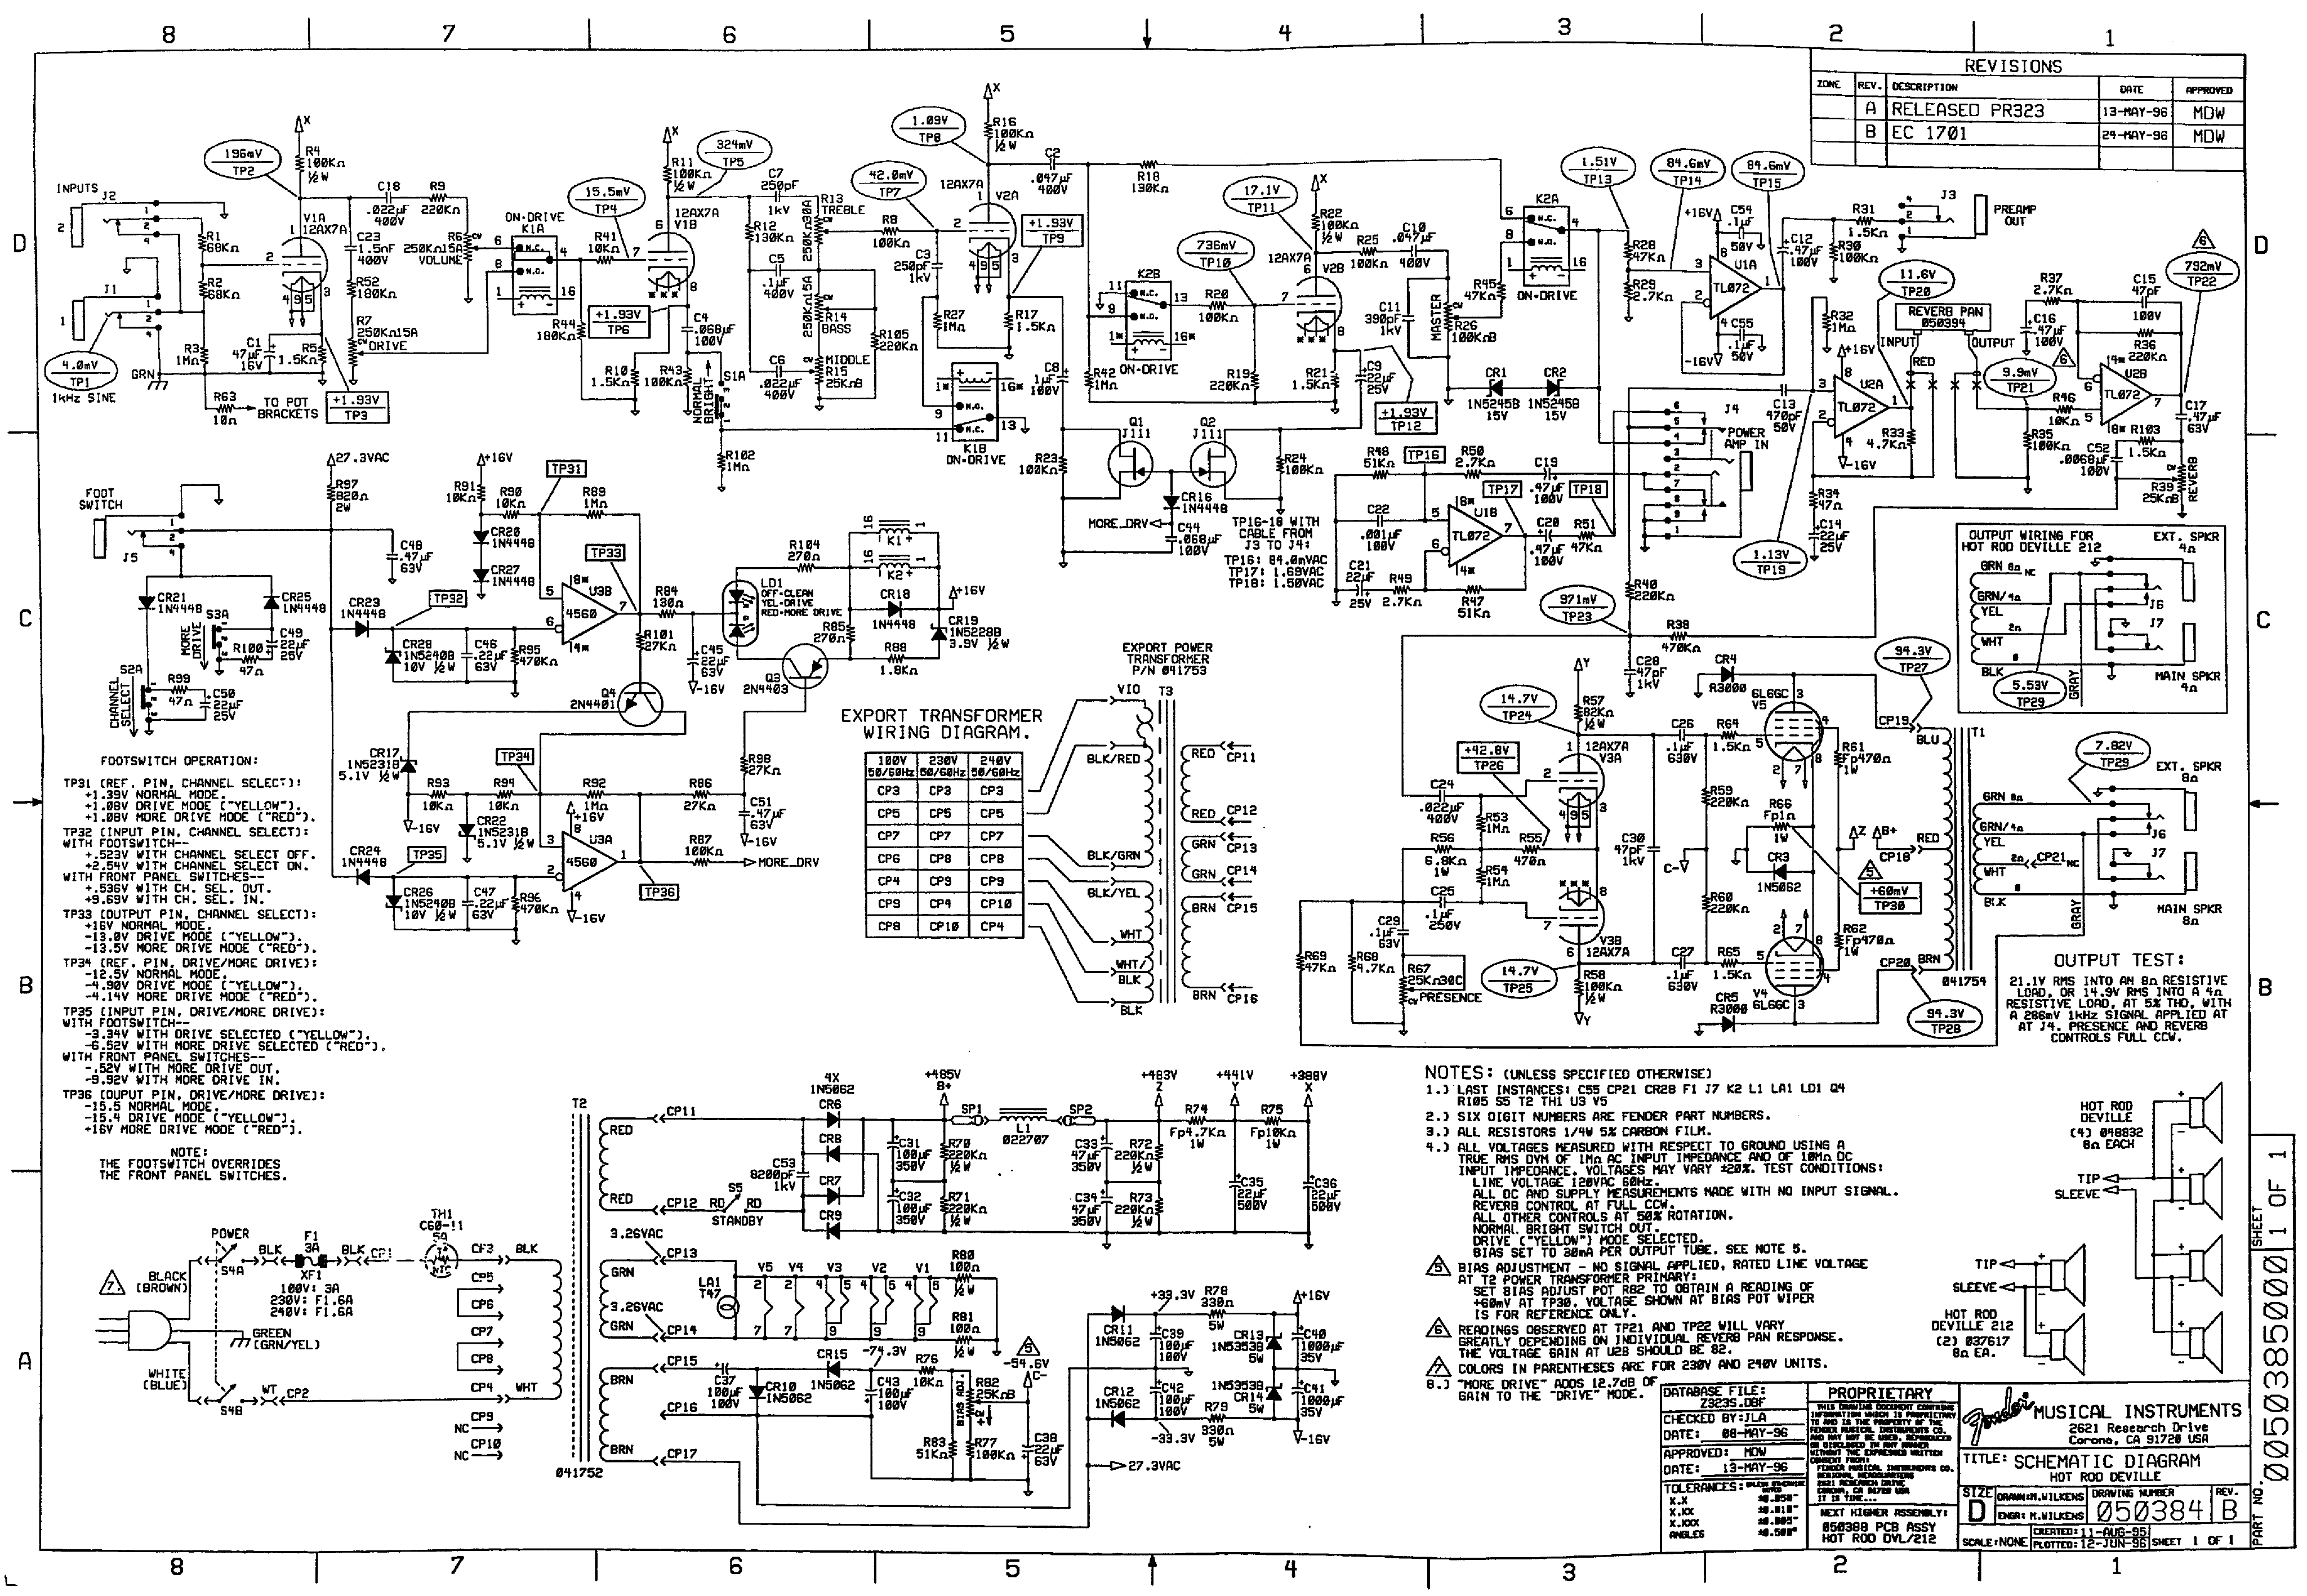 1365351 Installing C6 Rebuilt Transmission Crossmember Problems in addition 1996 Lt1 Wiring Harness moreover 2084605 A C Diagram together with 95 Firebird Wiring Diagram further Schematics wiring. on lt1 engine swap wiring